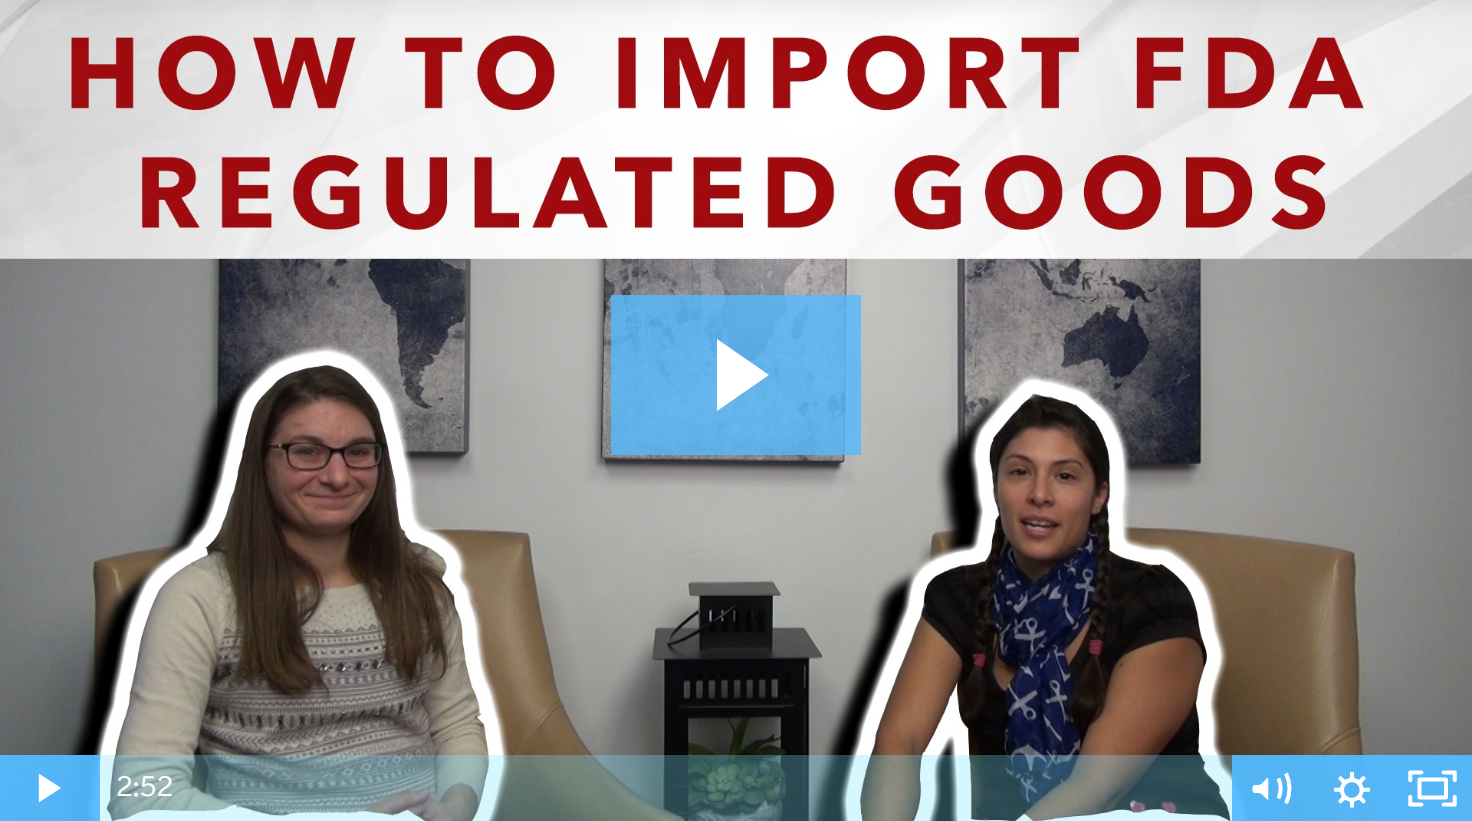 Thumbnail - How To Import FDA Regulated Goods